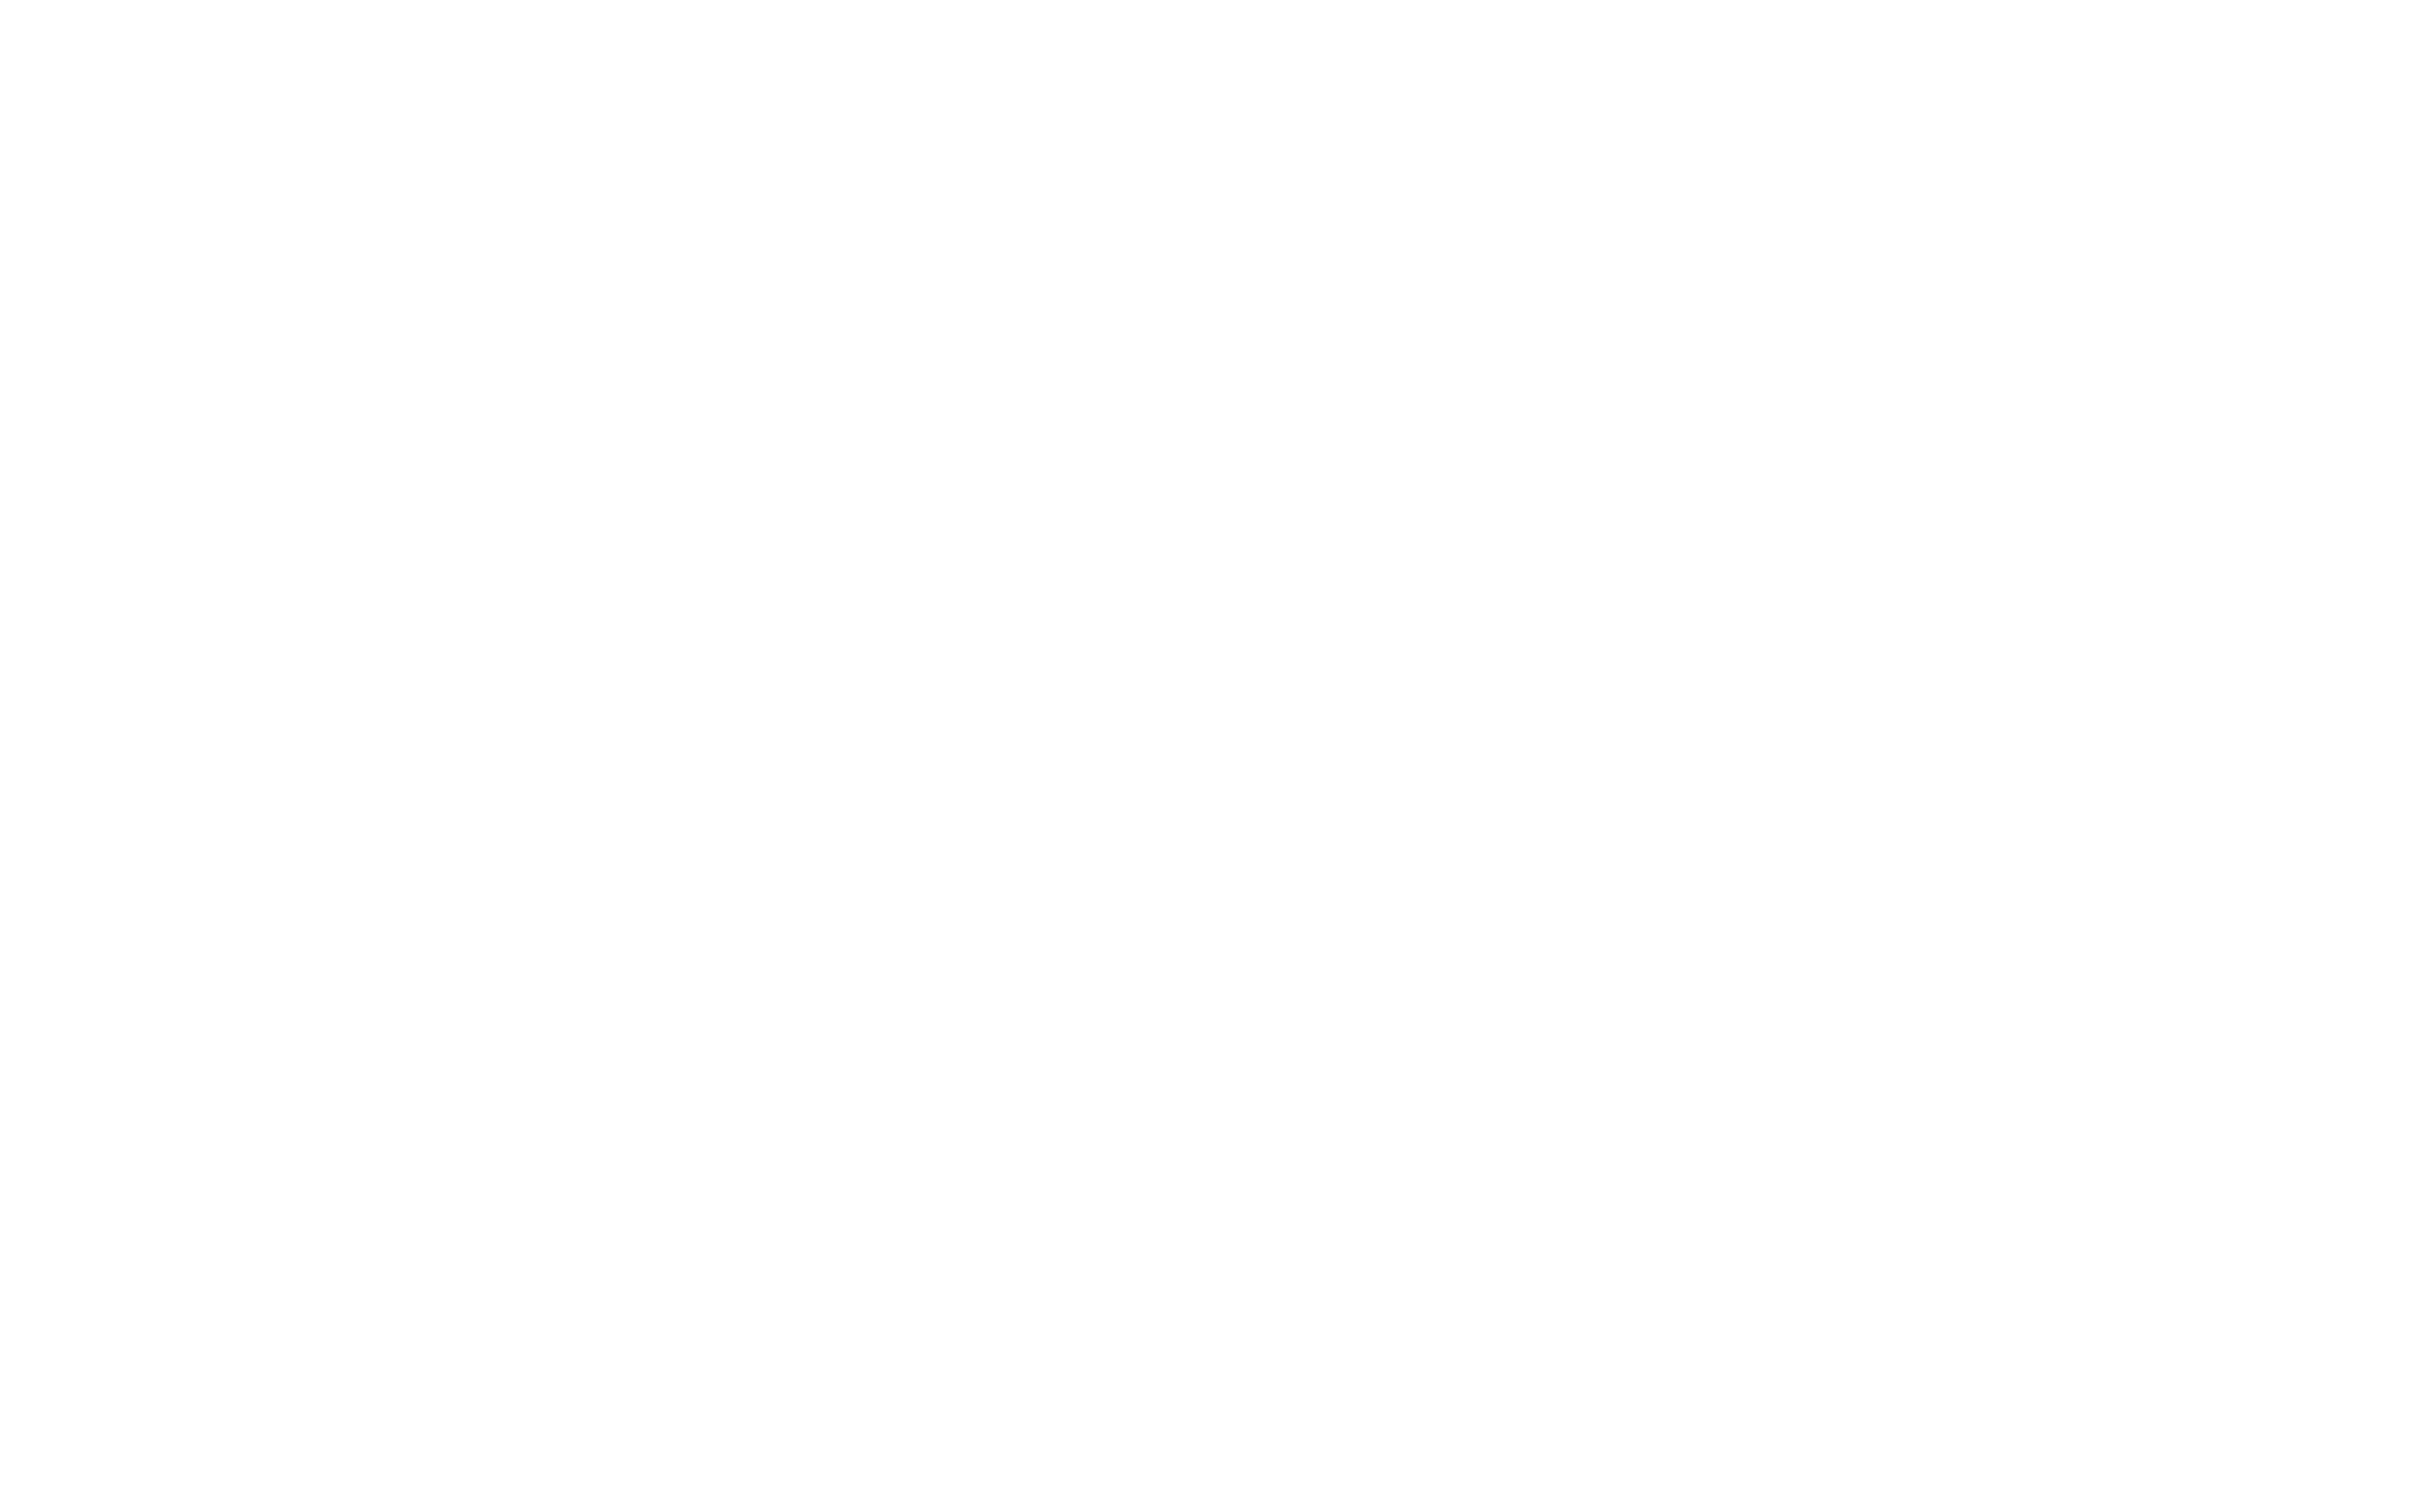 Schild Security & Service GmbH